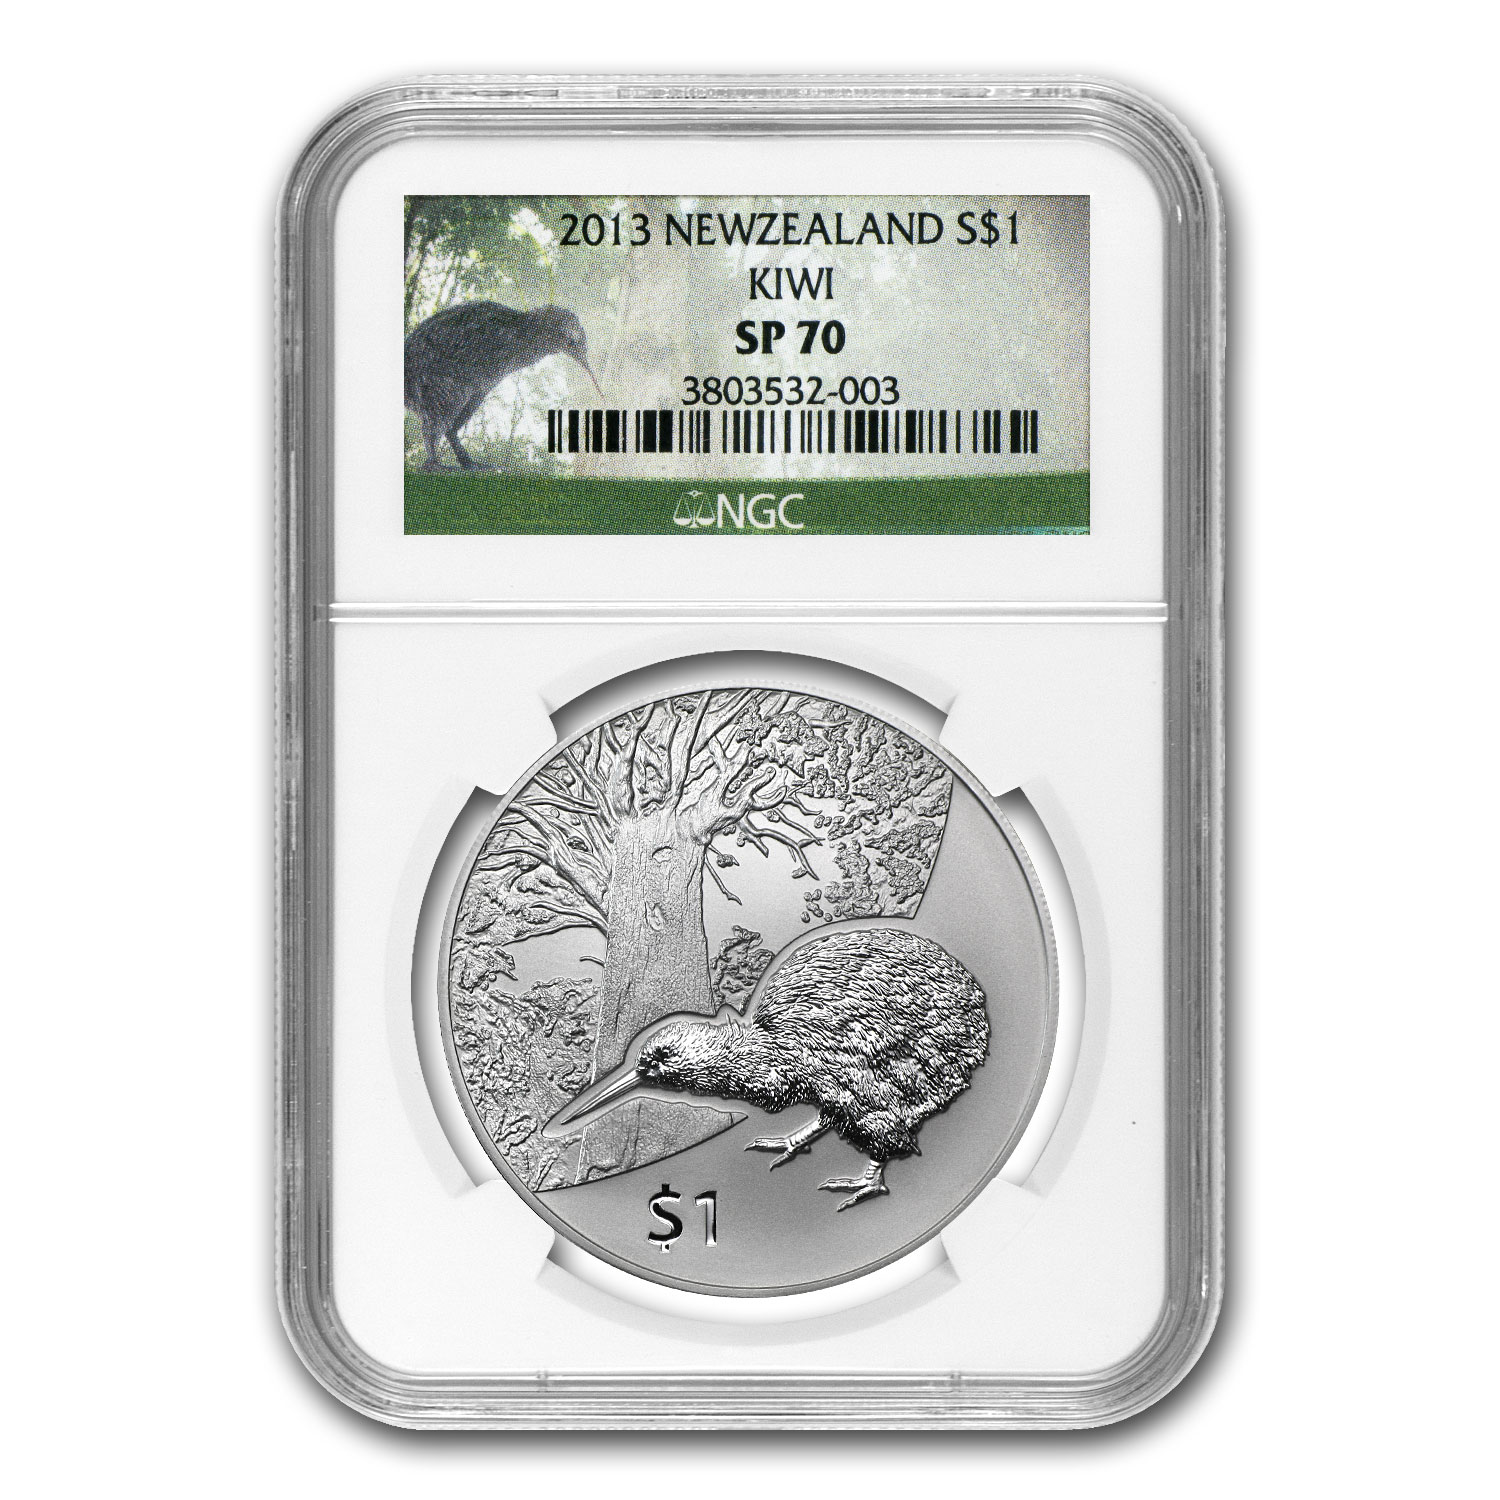 2013 New Zealand 1 oz Silver Treasures $1 Kiwi SP-70 NGC